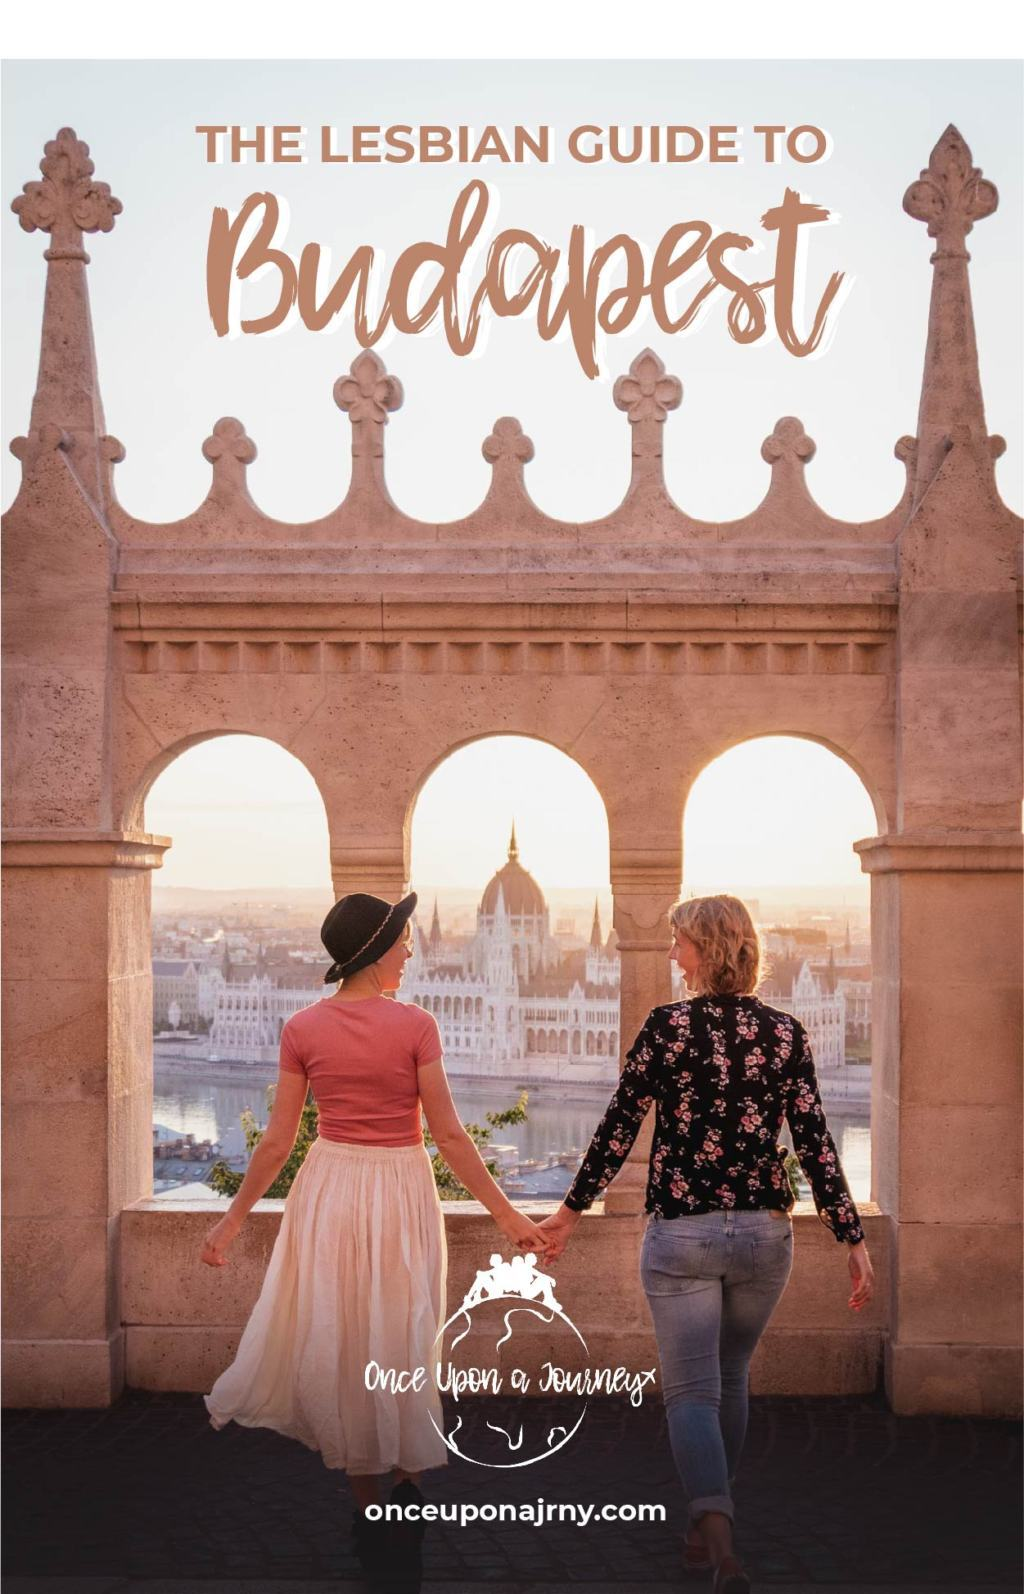 The Lesbian Guide to Budapest